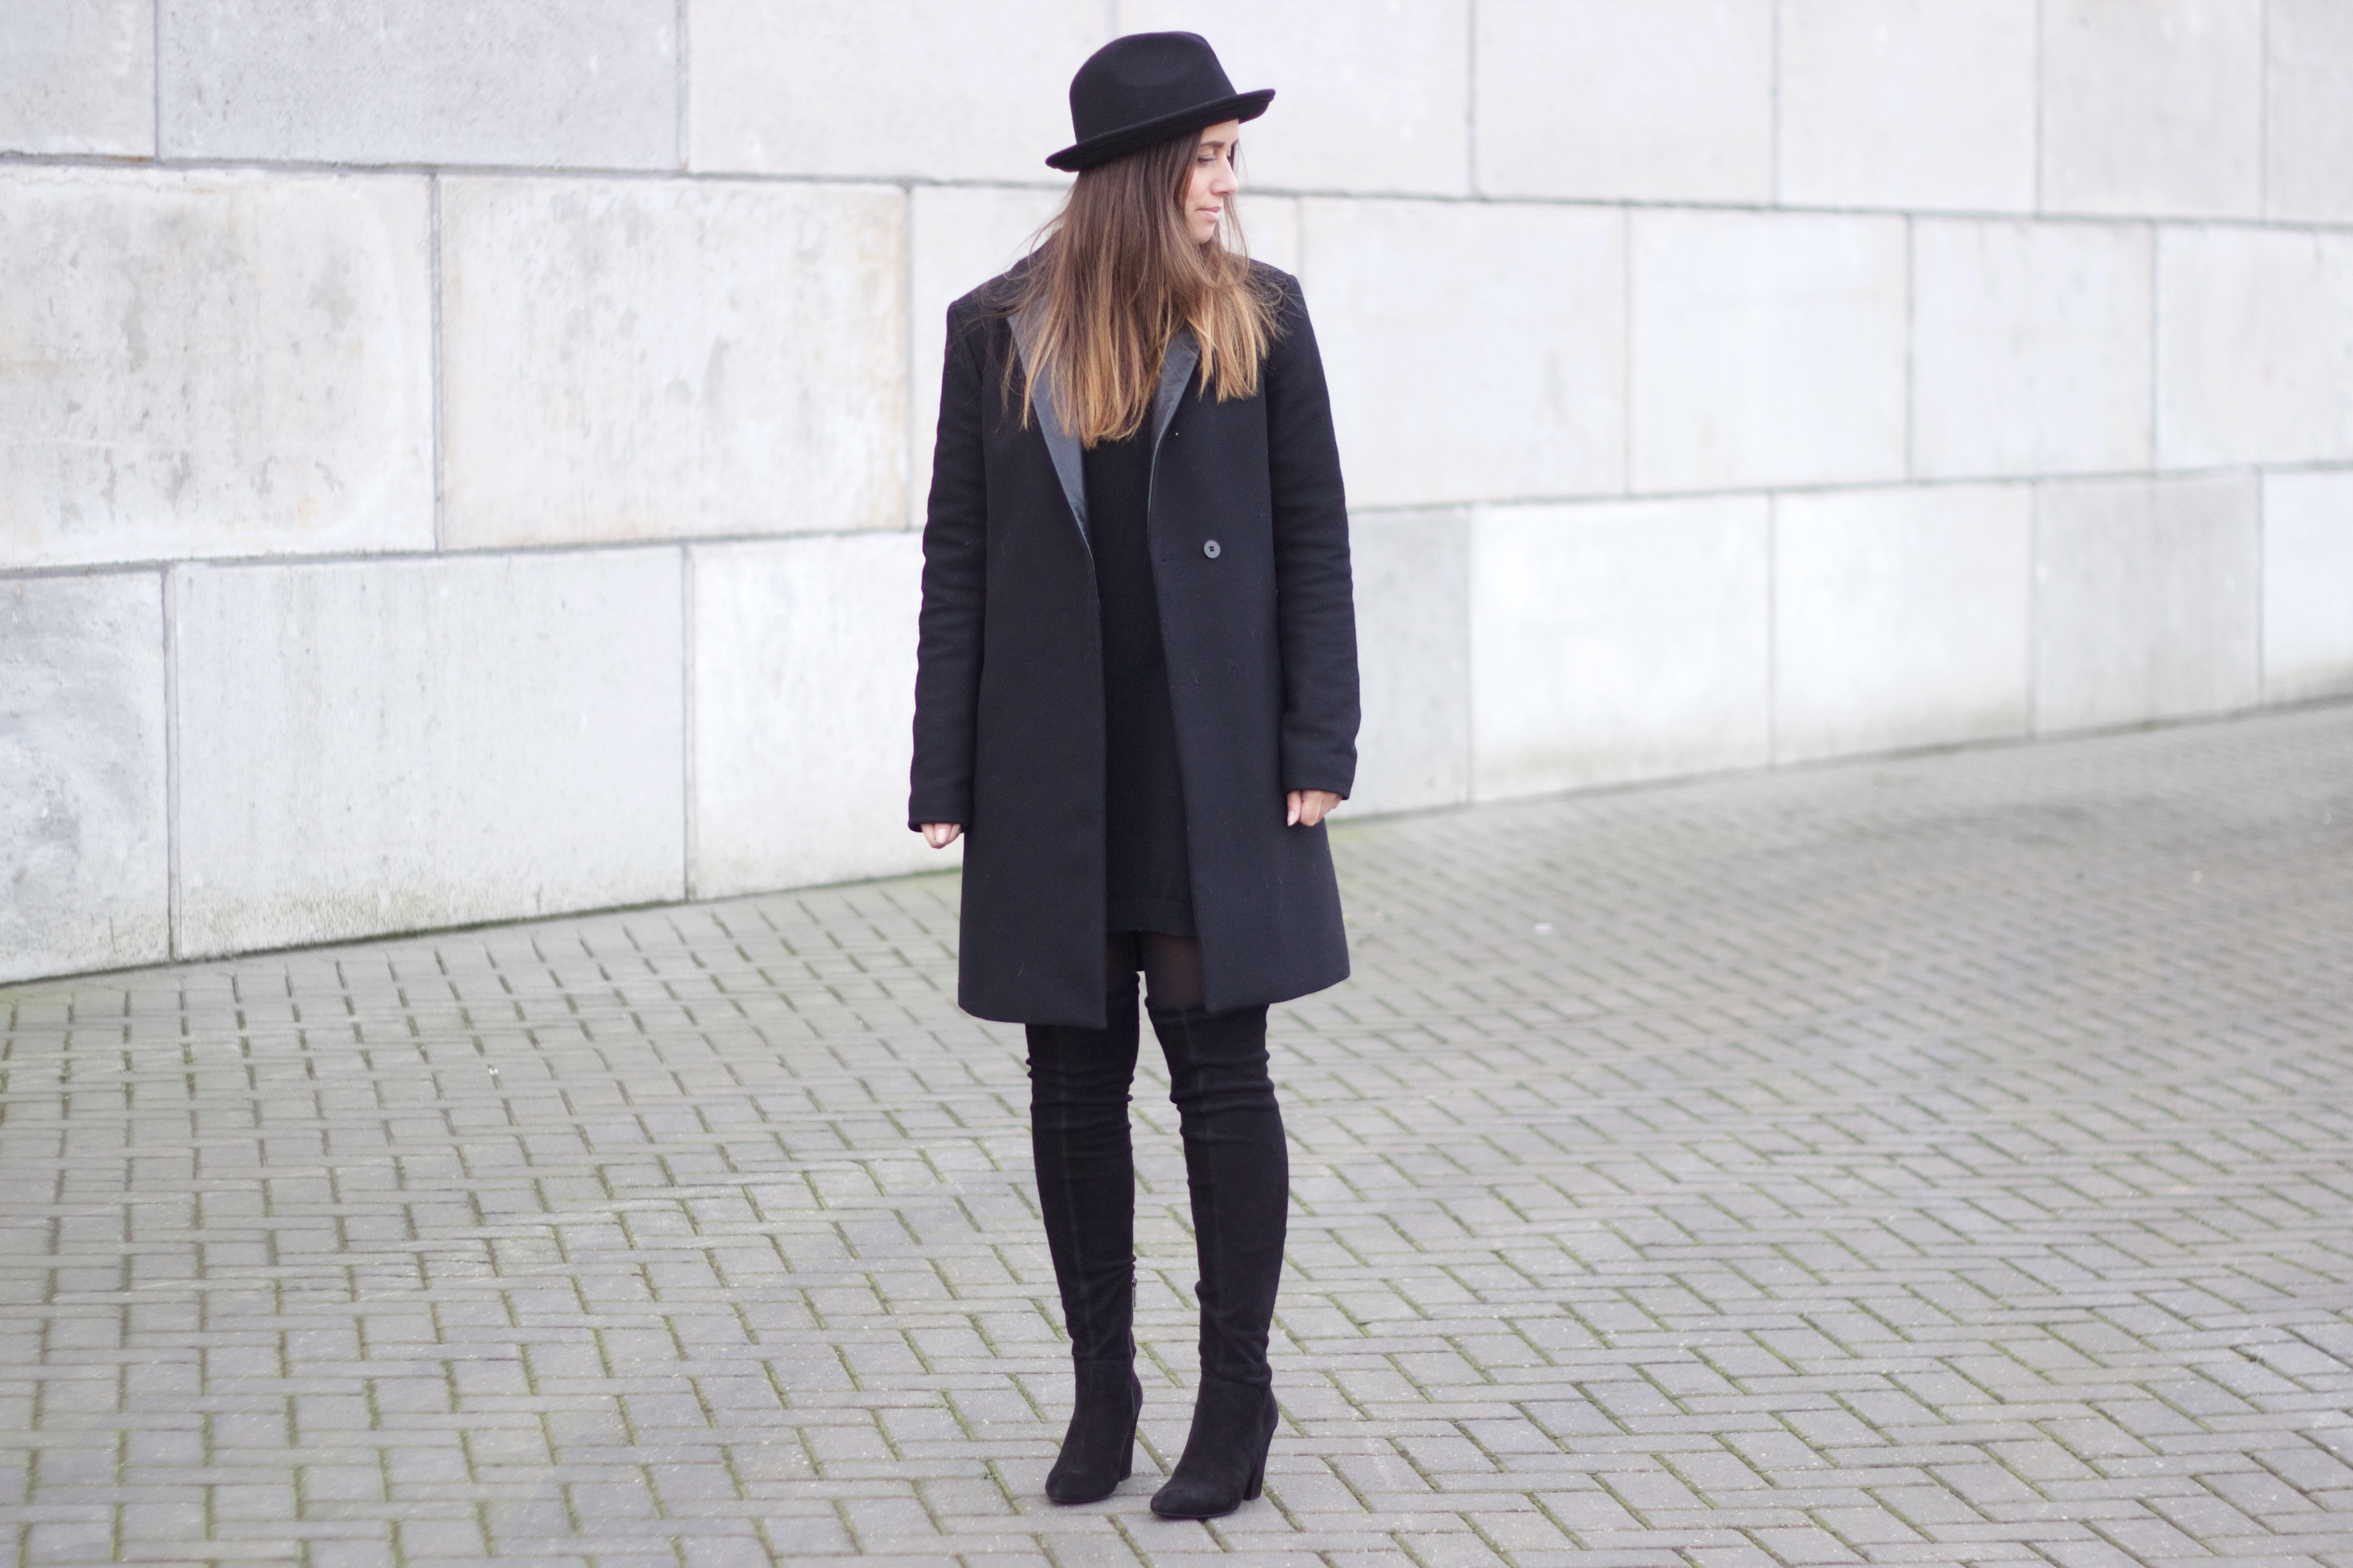 Overknee-boots-minimal-outfit-basic-simple-fashion